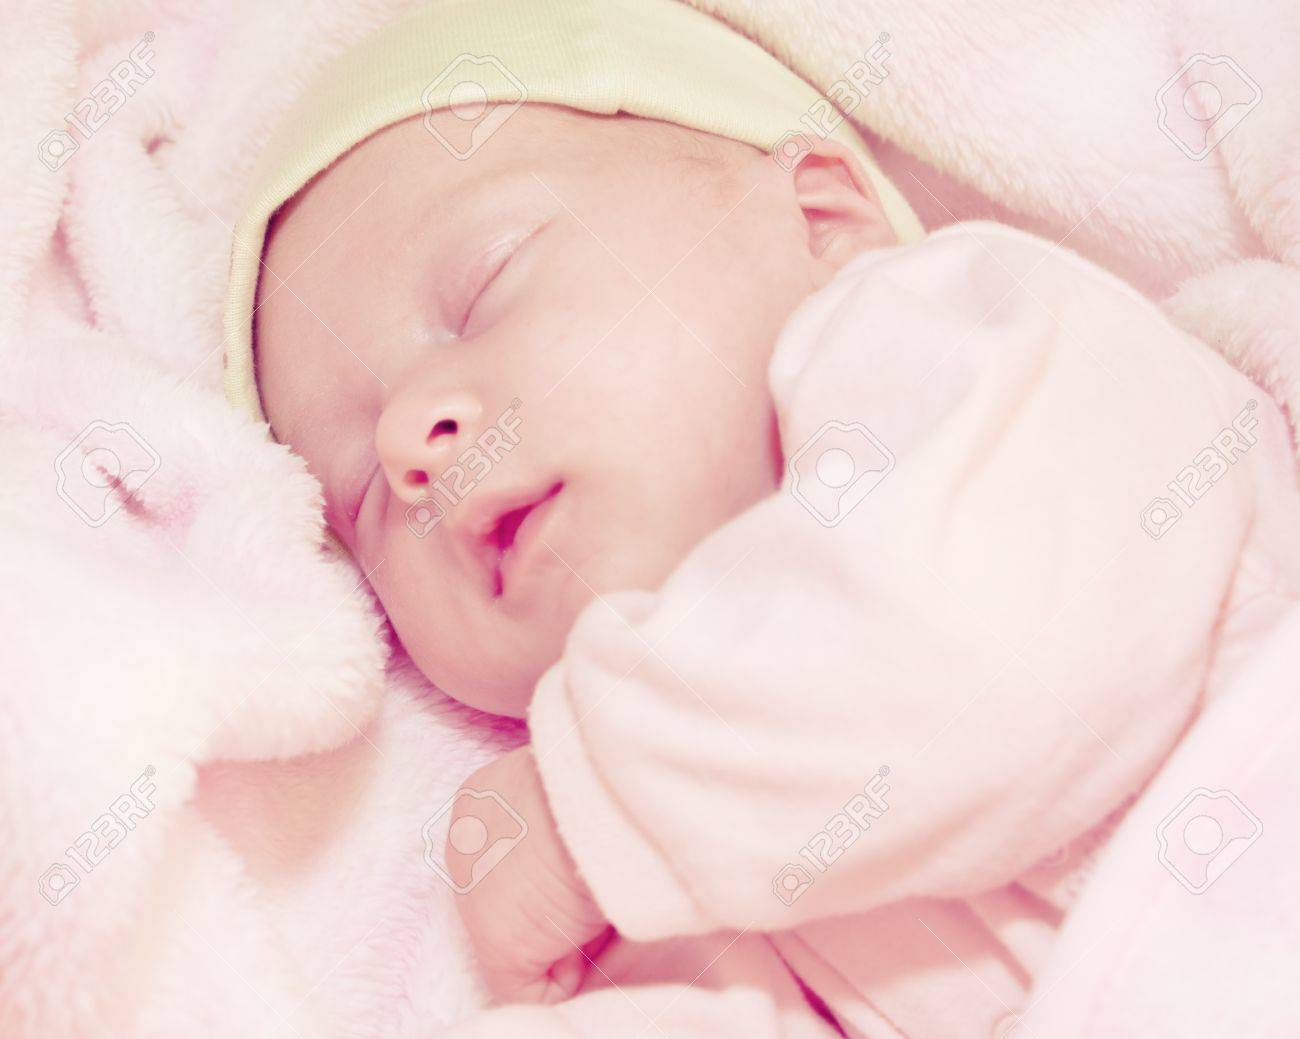 Two Weeks Old Baby Sleeping In Pink Blanket Stock Photo Picture And Royalty Free Image Image 11809968